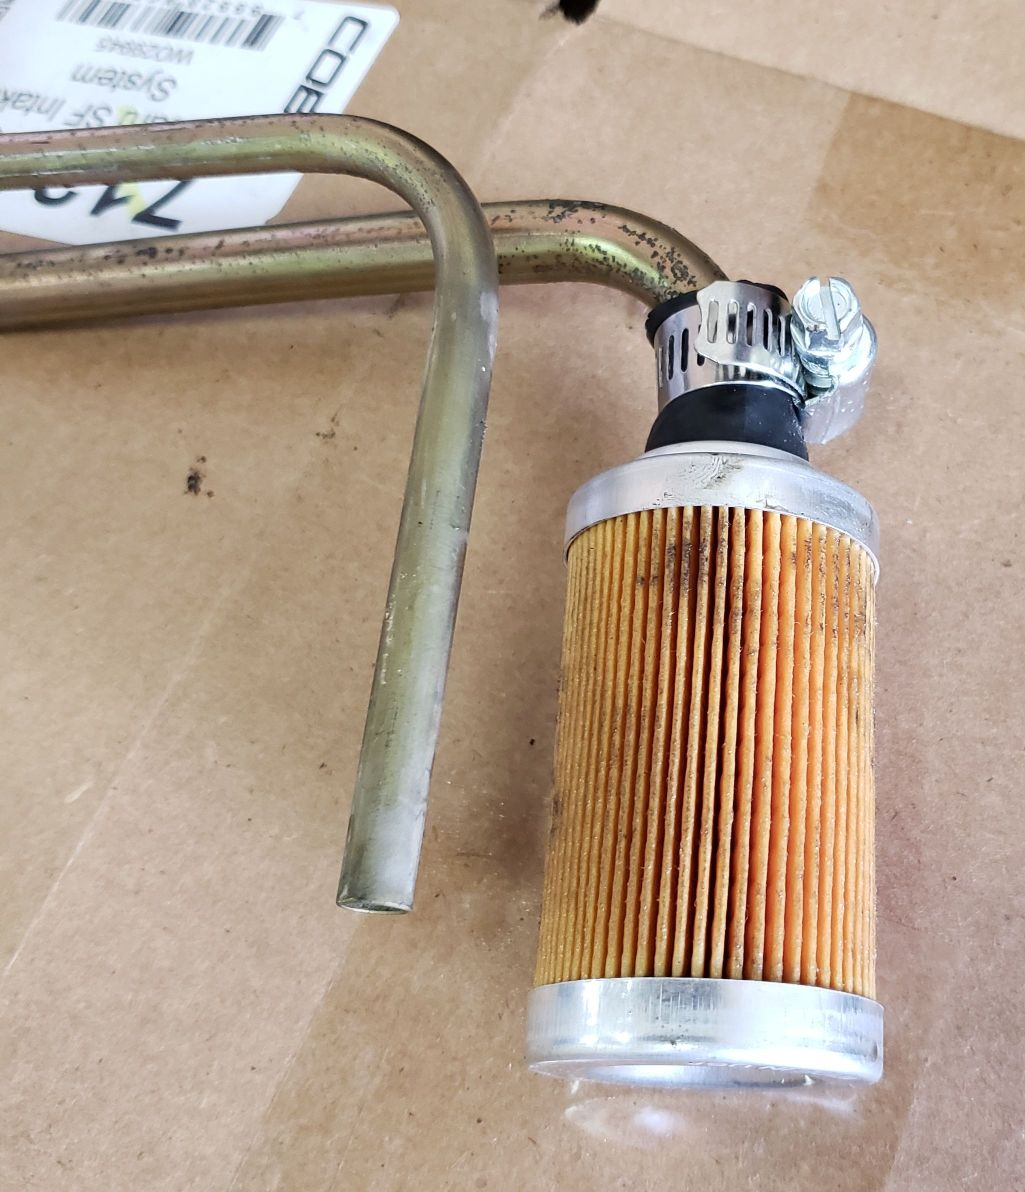 Gsl Se Owners Watch Out For Your Gas Tank In Fuel Filter Tip Aeromotive This Got The Car Running Well Enough Owner To Take Home Has Been Warned That They Need A New Or Very Thorough Cleaning